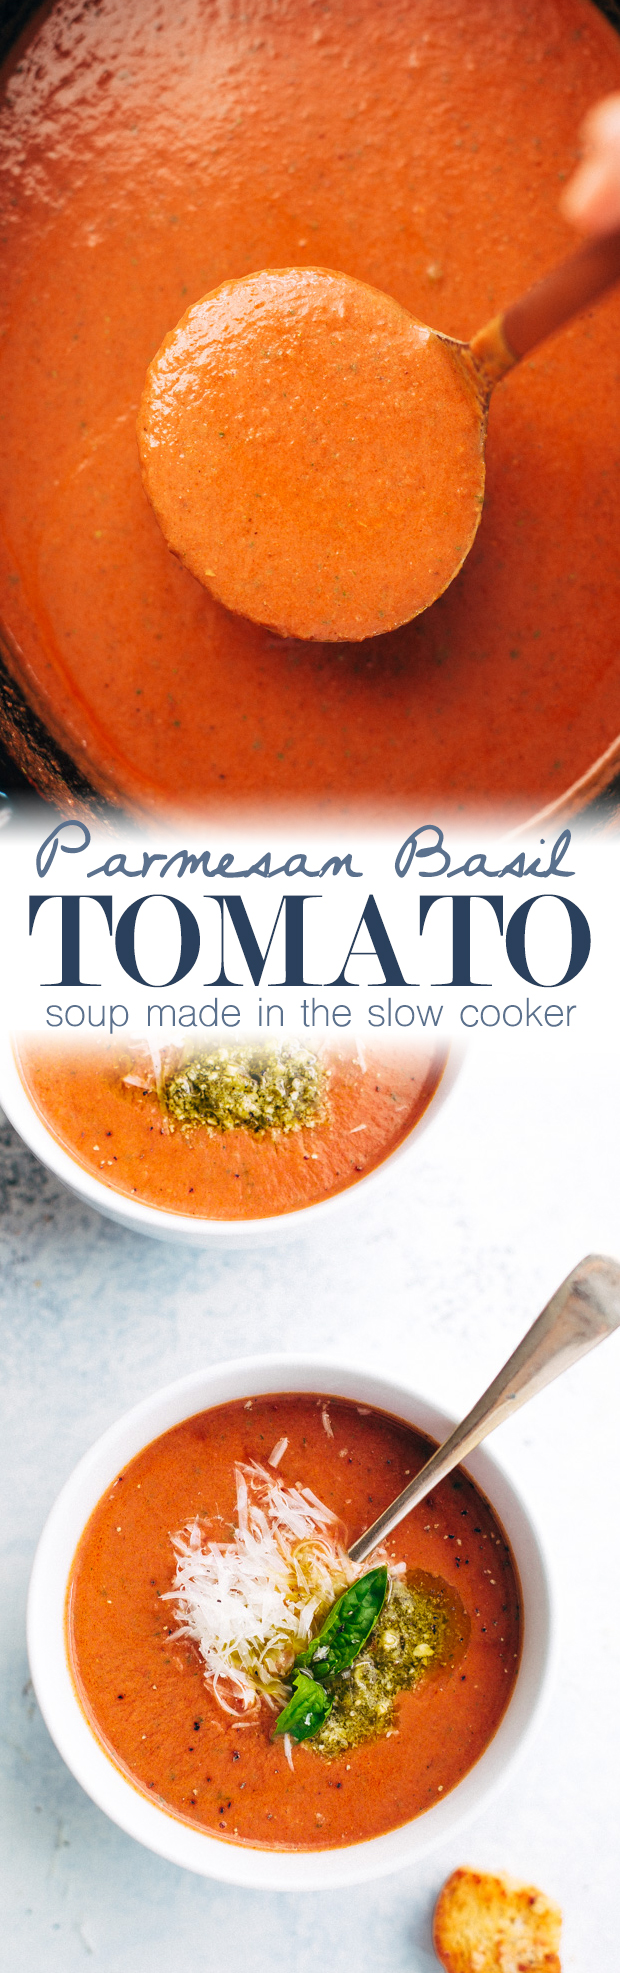 Parmesan Basil Tomato Soup - A cozy tomato soup that's made in the slow cooker and loaded with tons of flavor! #tomatosoup #tomatobasilsoup #slowcooker #crockpot | Littlespicejar.com